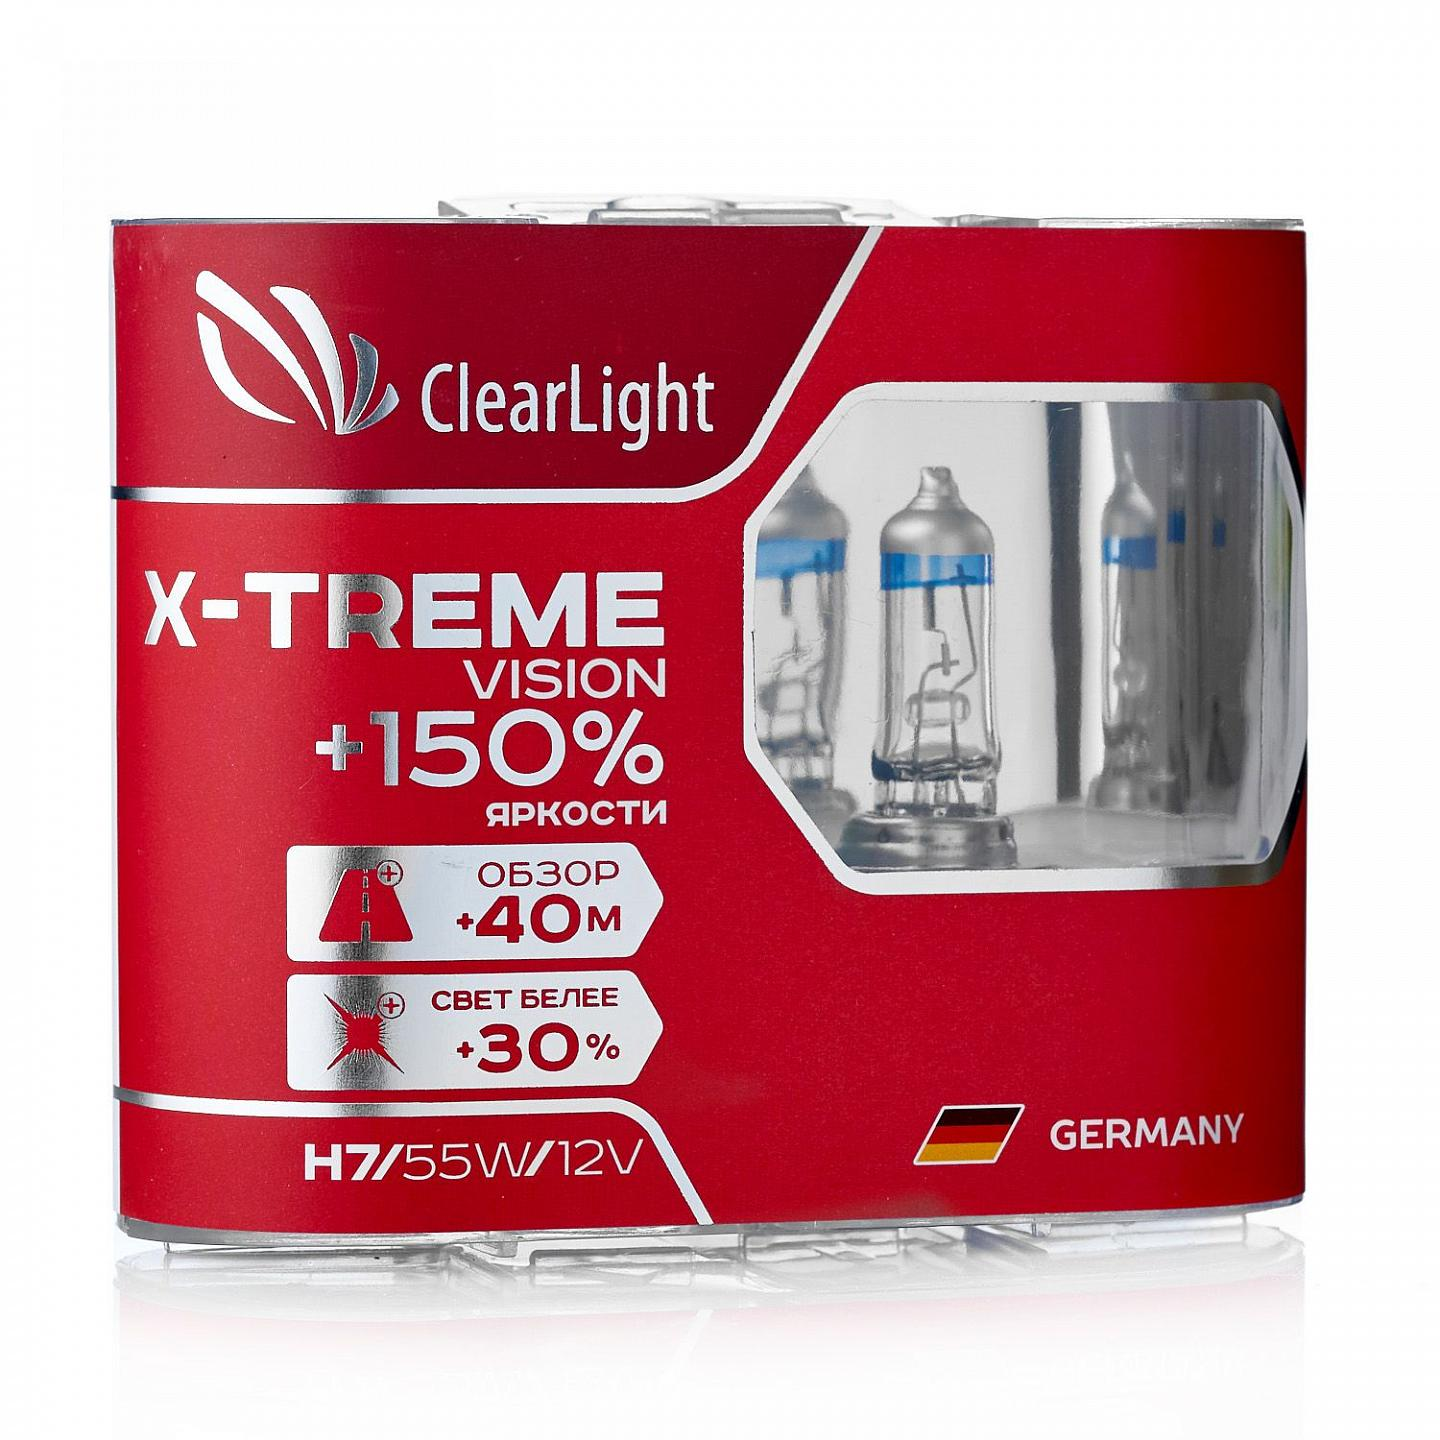 цена на Лампа HB4(Clearlight)12V-51W X-treme Vision +150% Light (компл., 2 шт.)